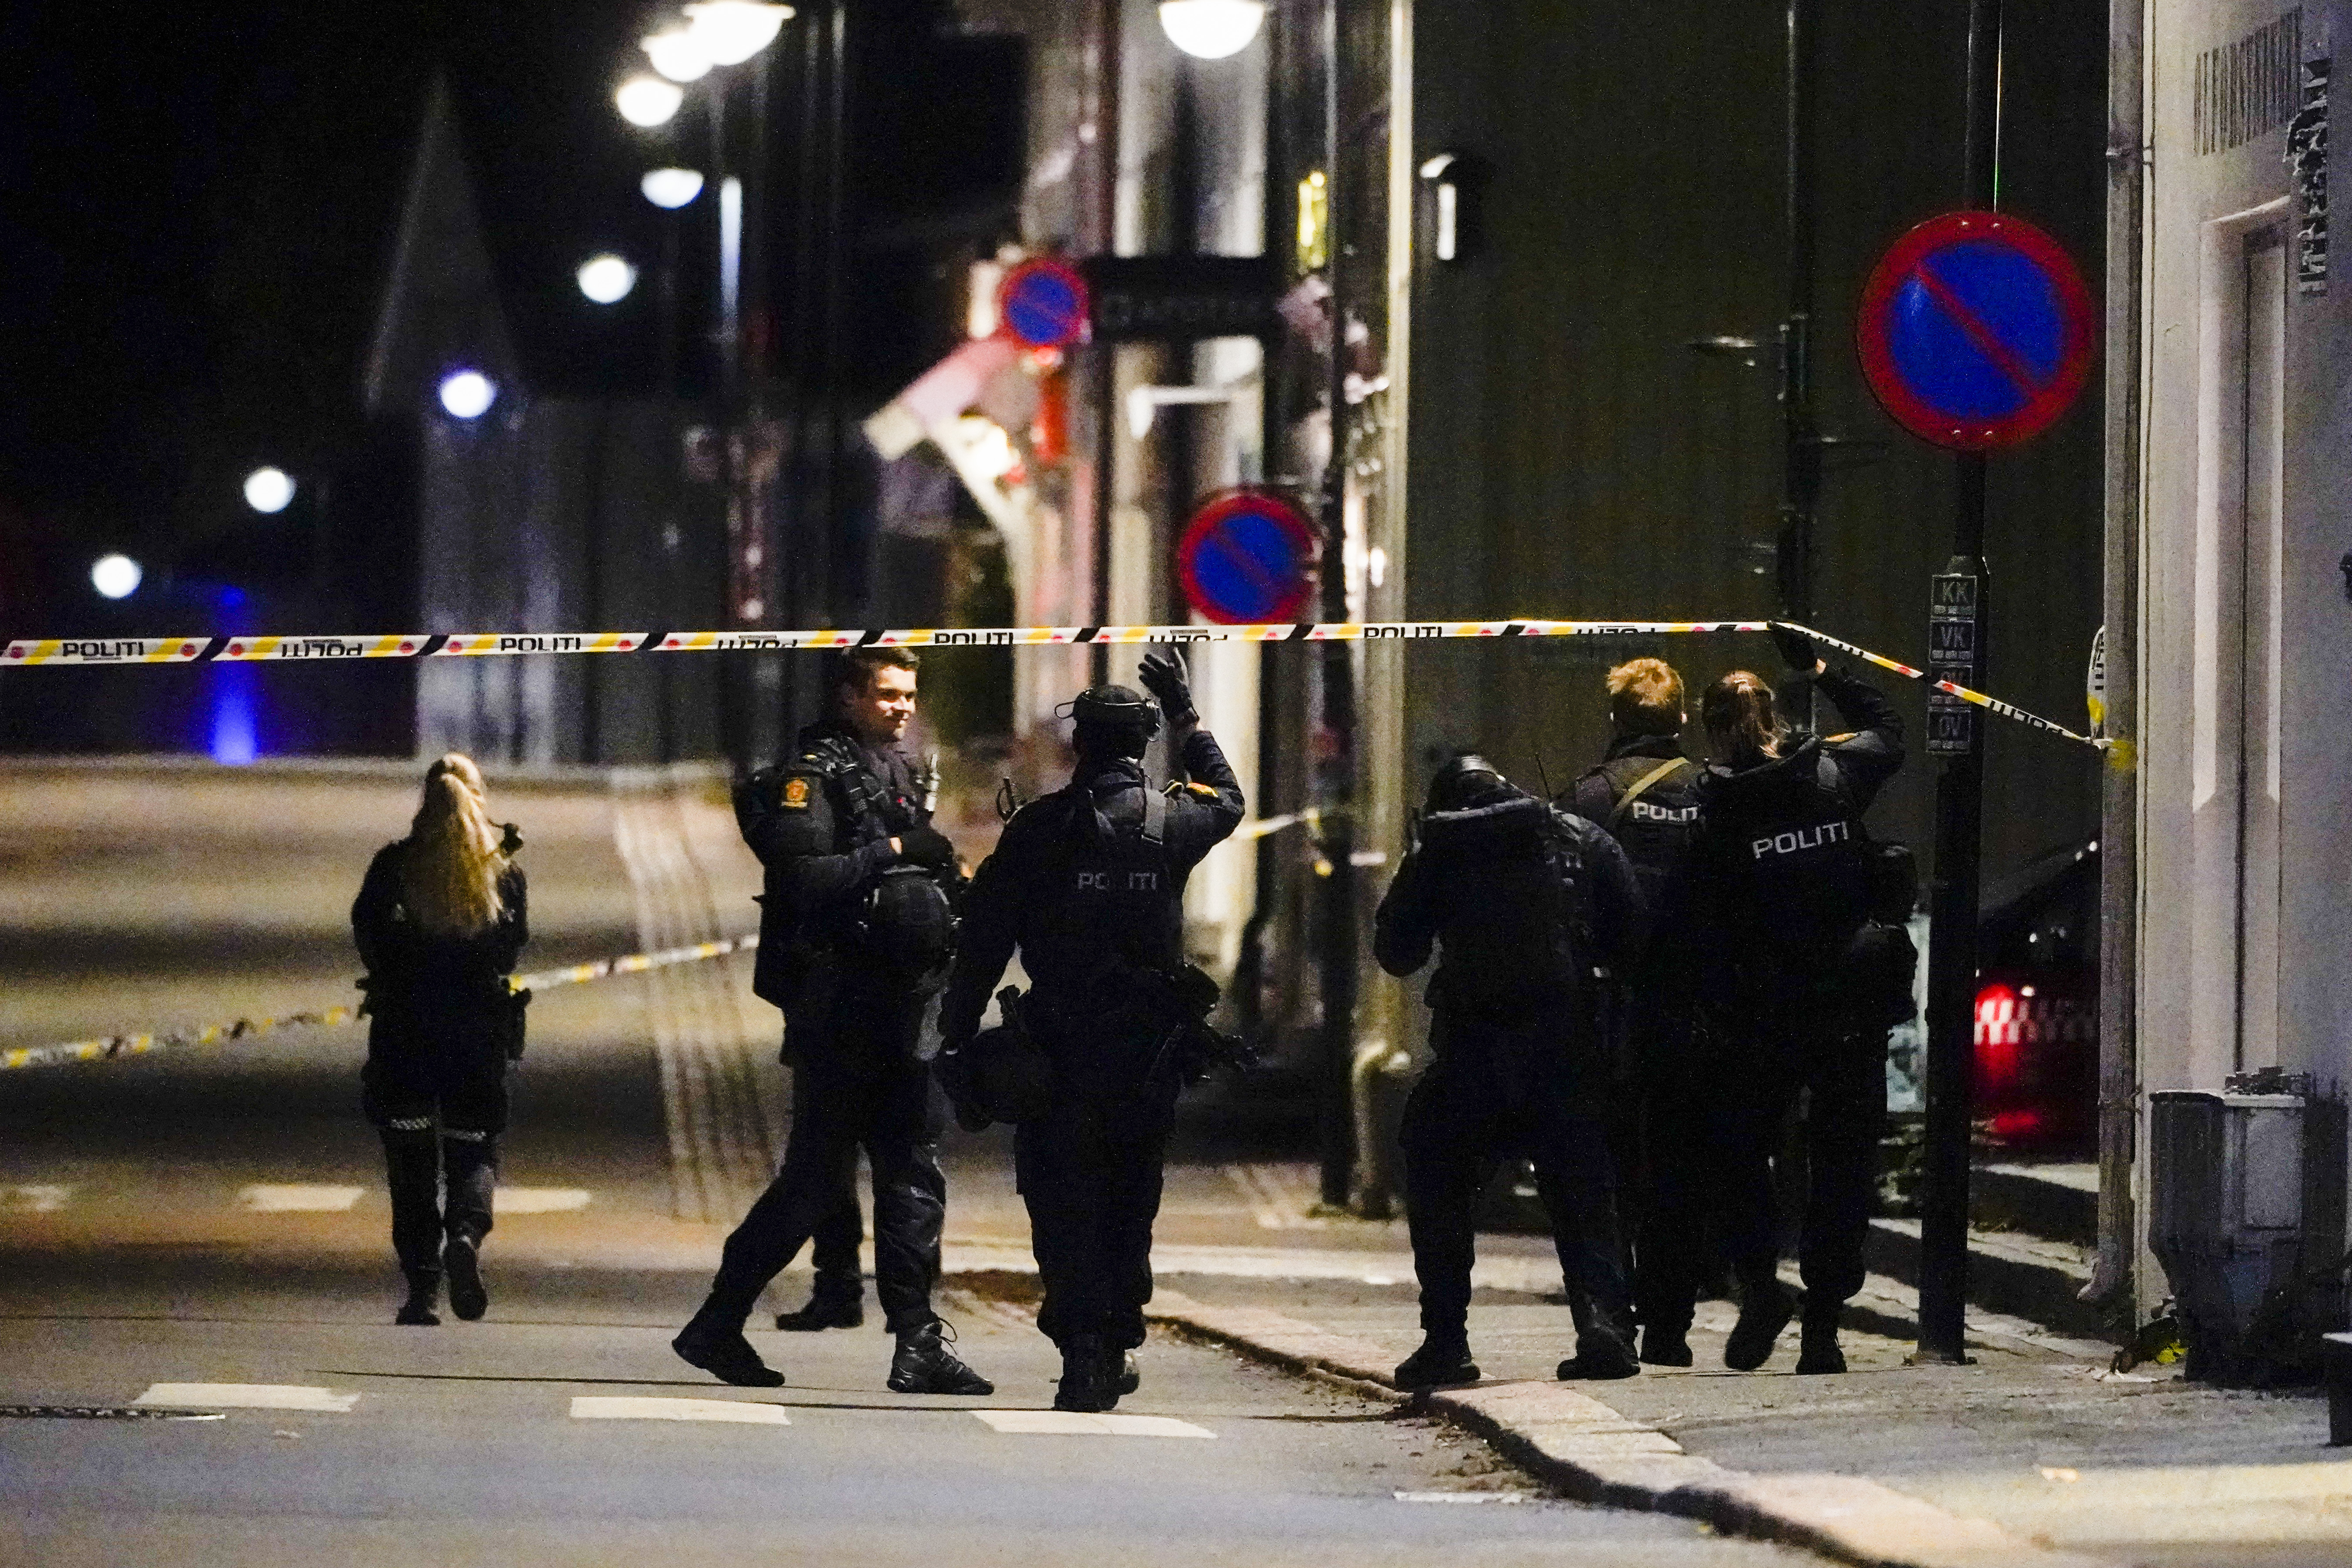 Police at the scene of the attack in Kongsberg